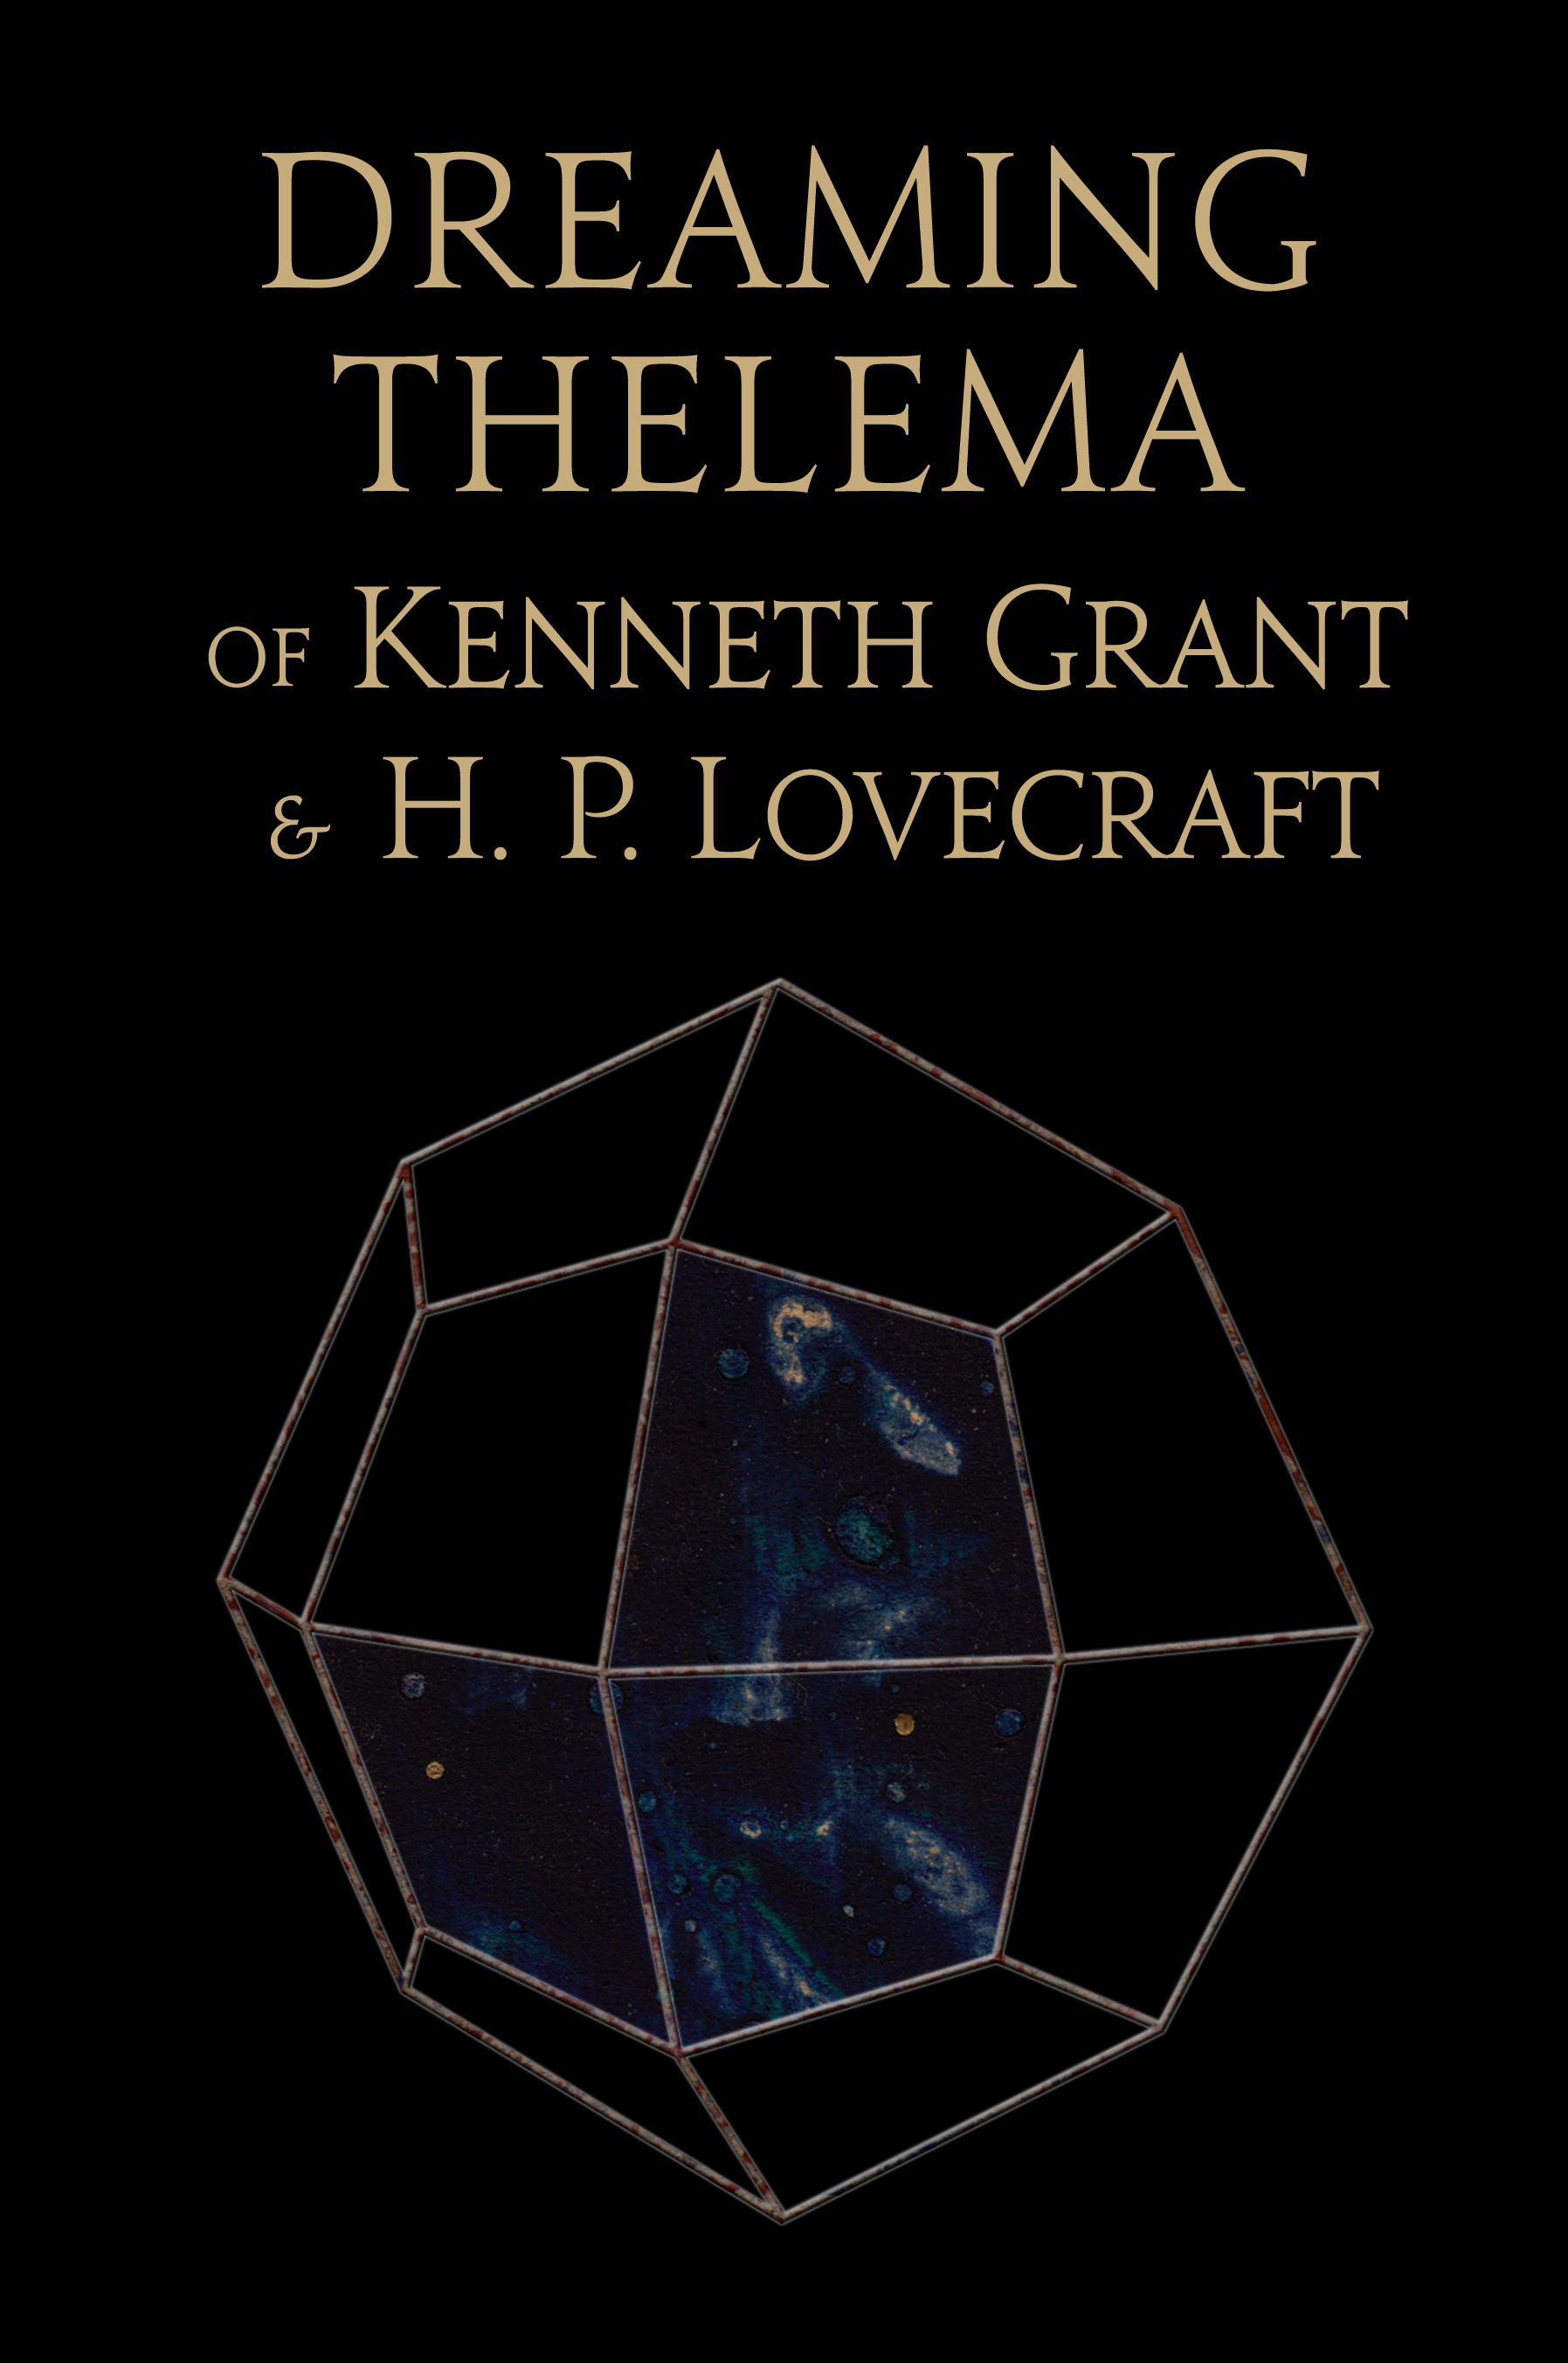 Dreaming Thelema of Kenneth Grant and HP Lovecraft